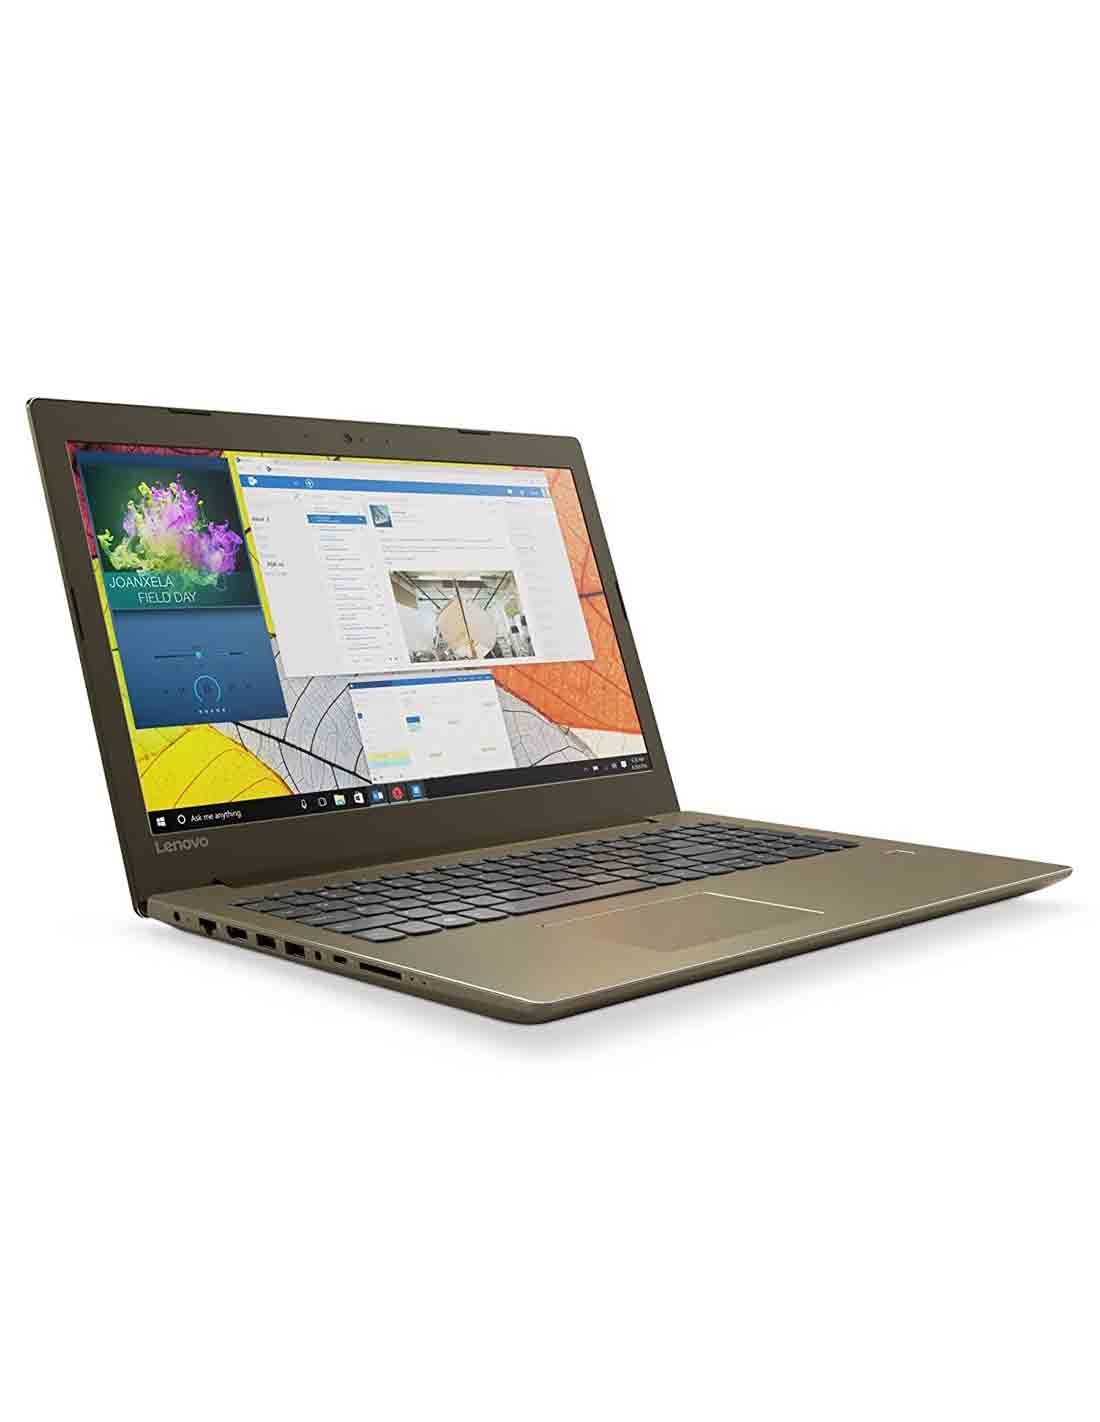 Lenovo IdeaPad 520 Bronze 8th Gen Intel Core i7 Dubai online store